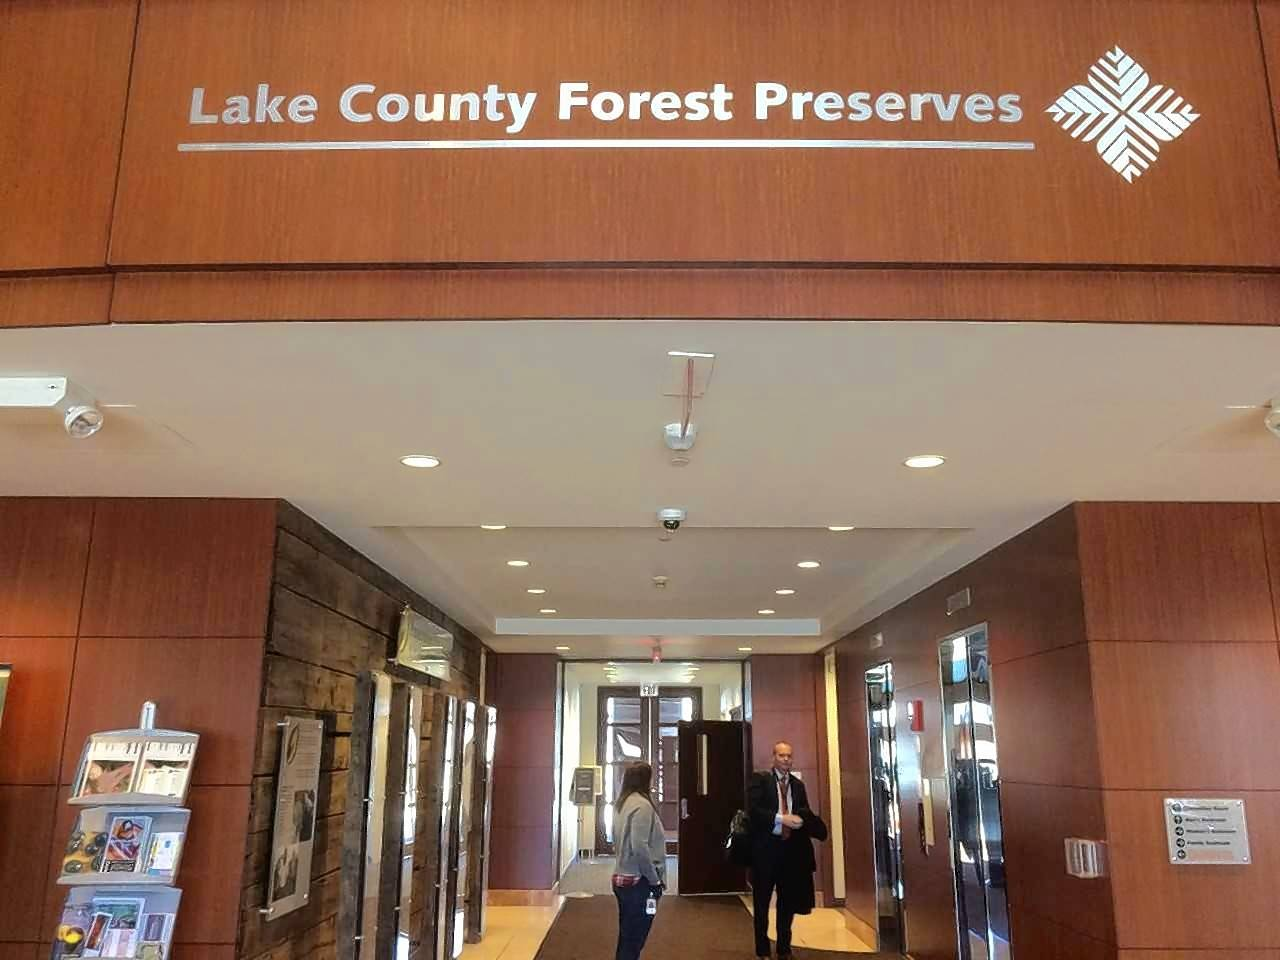 Lake County forest board likely to seek measure to replace its president if needed